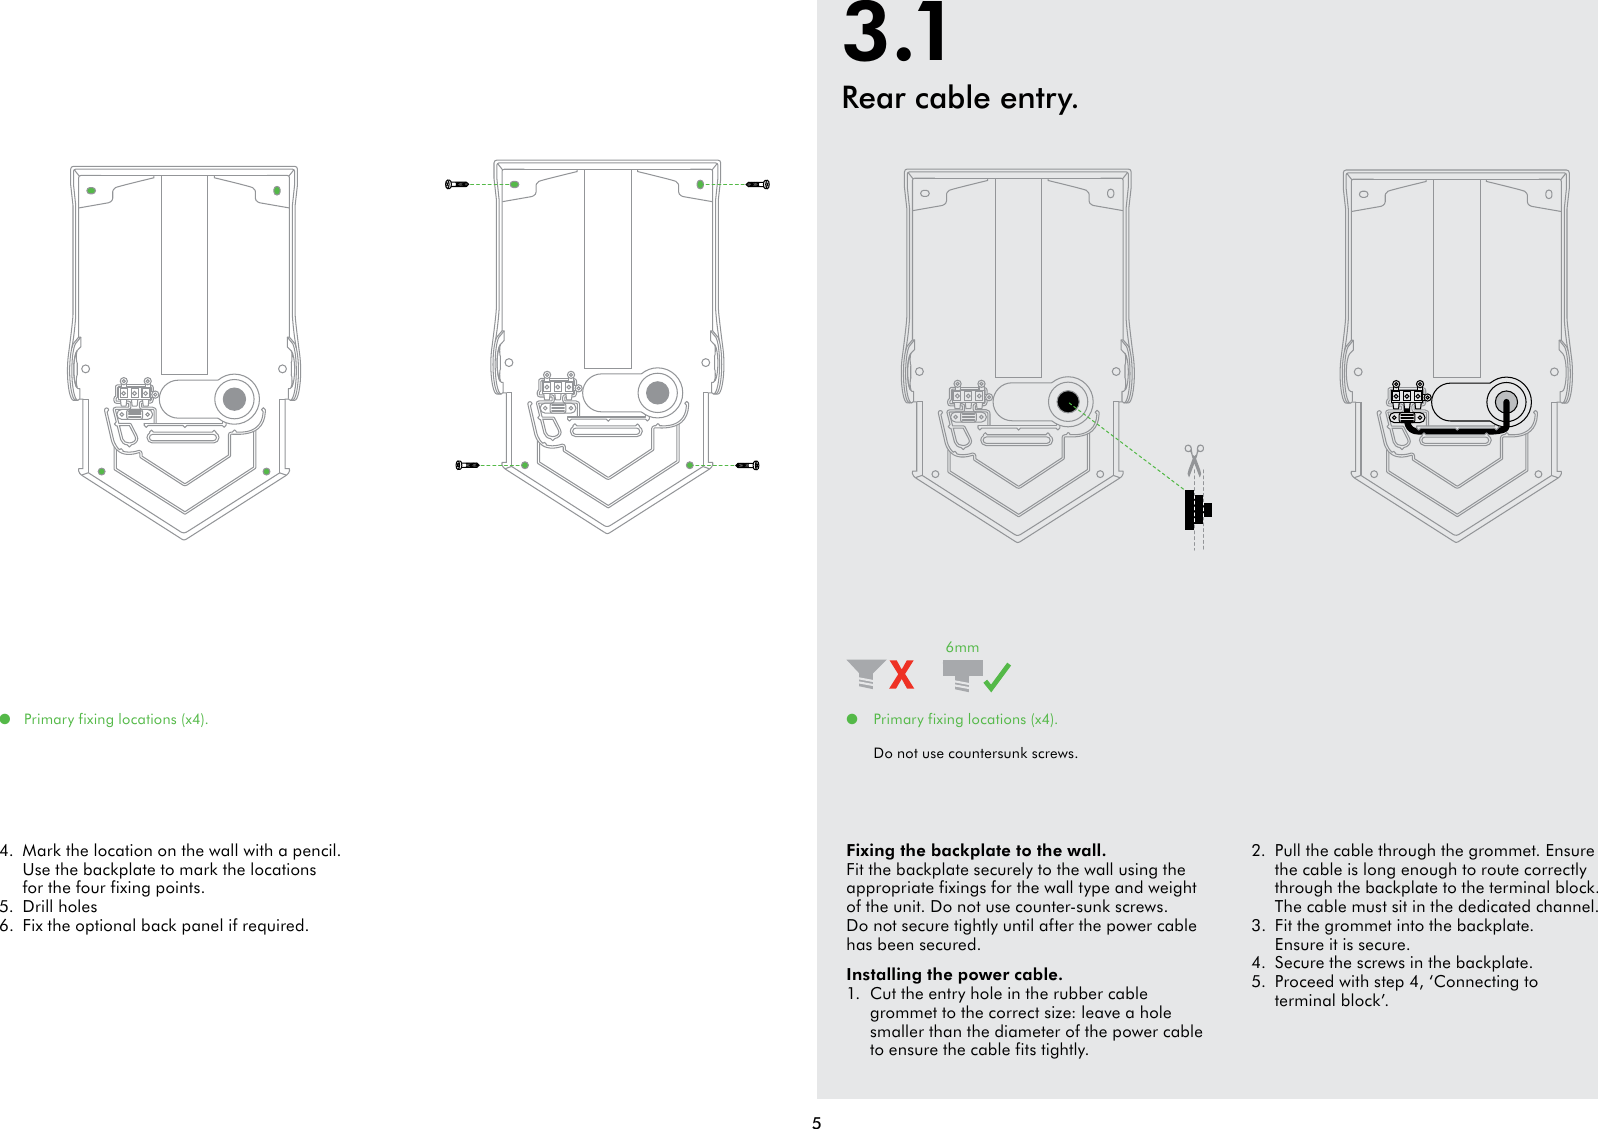 page 5 of 8 dyson dyson airblade v installation guide - Dyson Airblade V